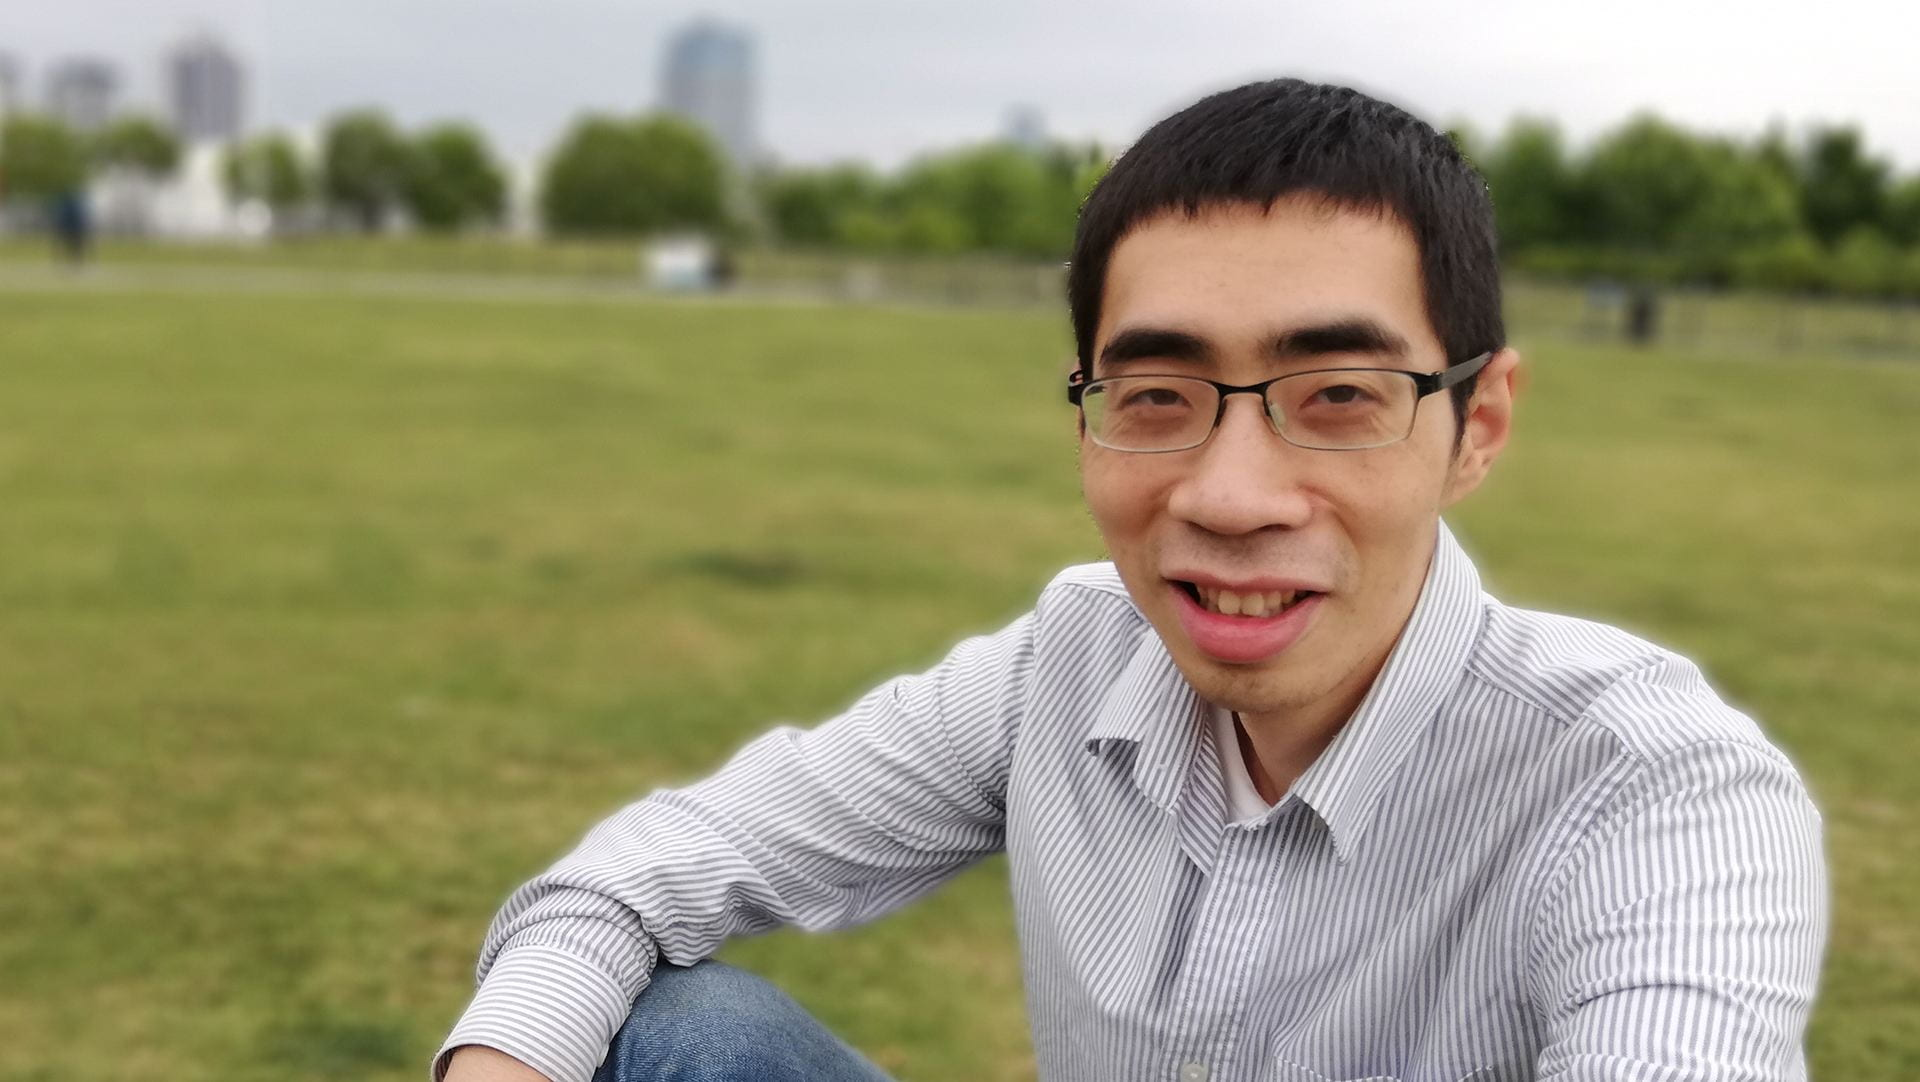 Shanghai entrepreneur Nick Zhu is a Rice CS alumnus.